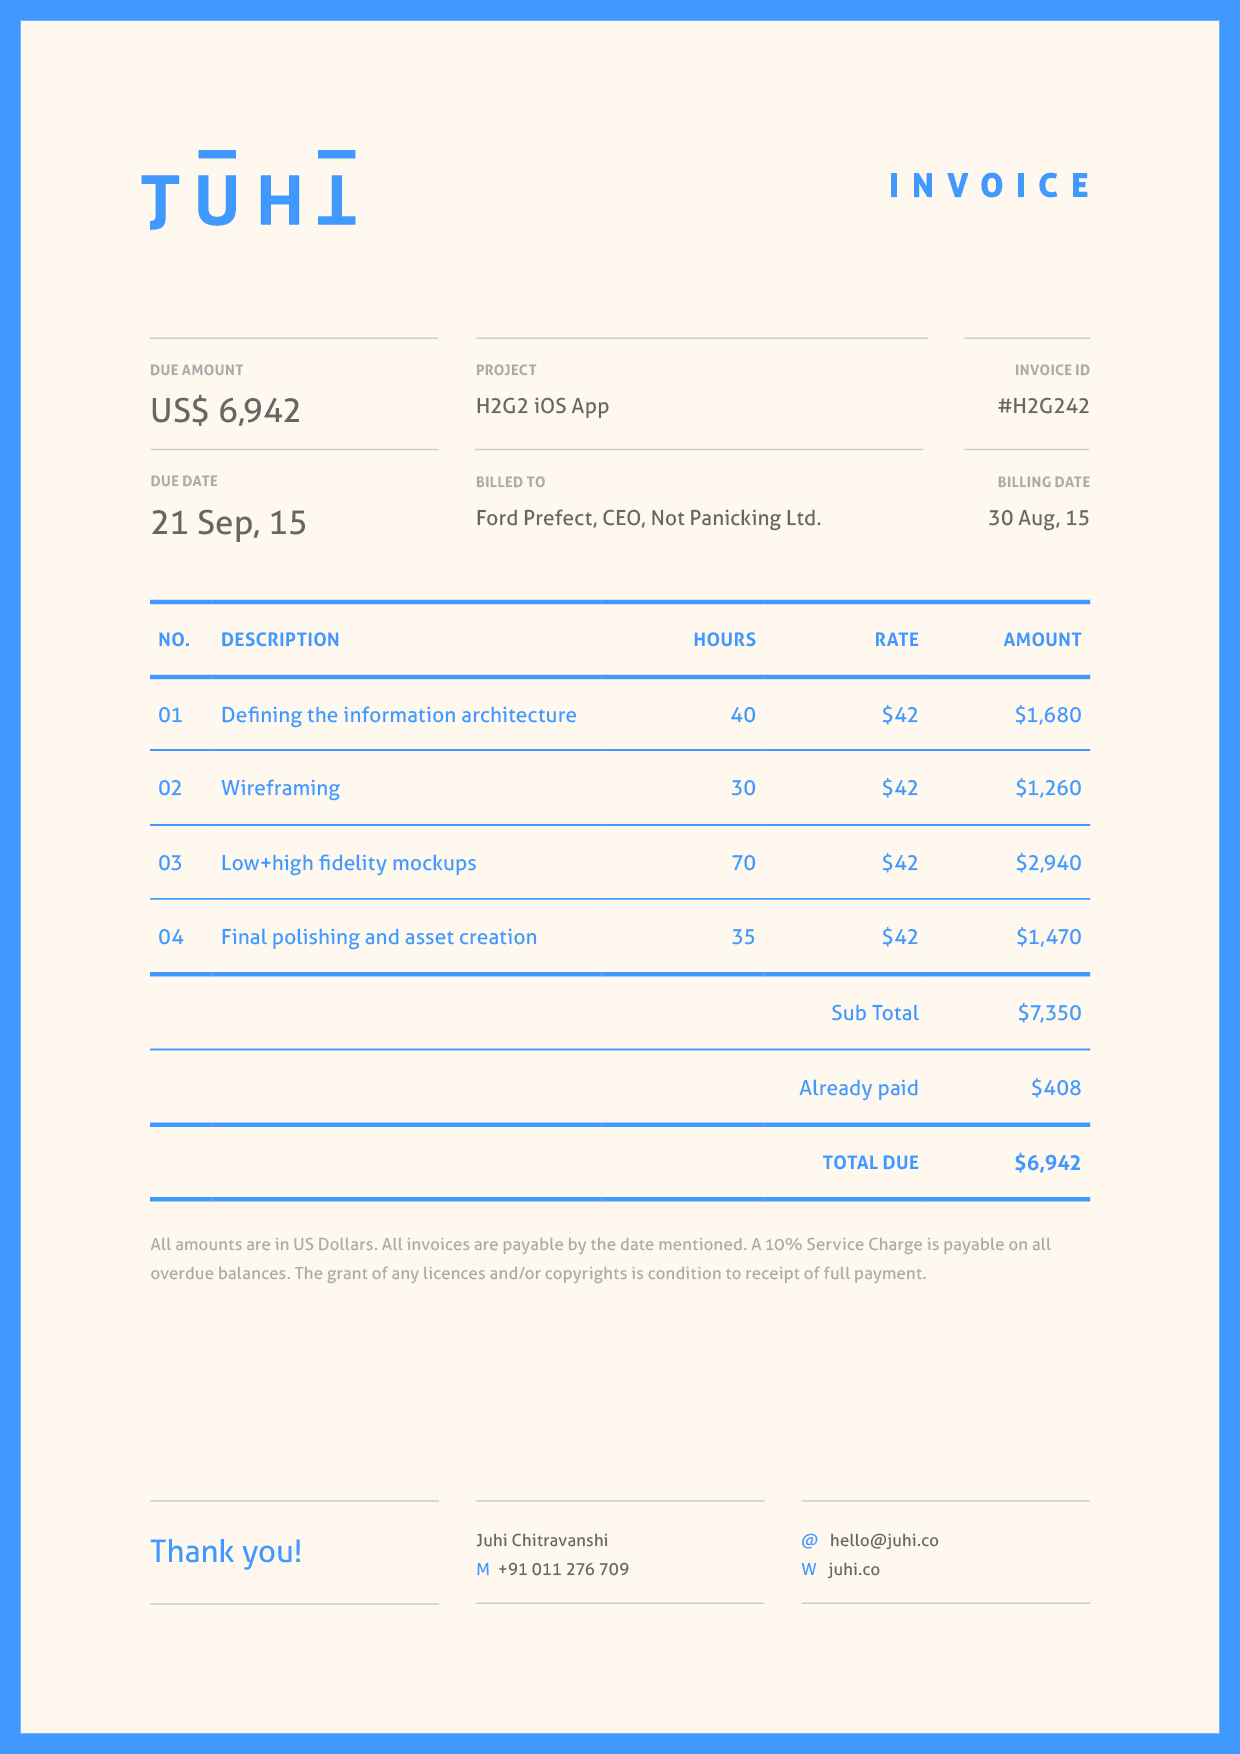 Pigbrotherus  Seductive Dont Hold Back On Your Invoice  Inspiring Designs  With Interesting Invoice By Juhi Chitravanshi Follow With Appealing Shipping Invoice Definition Also Invoice Tracker App In Addition Sample Invoice Google Docs And Payment On The Invoice As Well As Invoice Html Additionally Dell Invoices From Inspirationfeedcom With Pigbrotherus  Interesting Dont Hold Back On Your Invoice  Inspiring Designs  With Appealing Invoice By Juhi Chitravanshi Follow And Seductive Shipping Invoice Definition Also Invoice Tracker App In Addition Sample Invoice Google Docs From Inspirationfeedcom